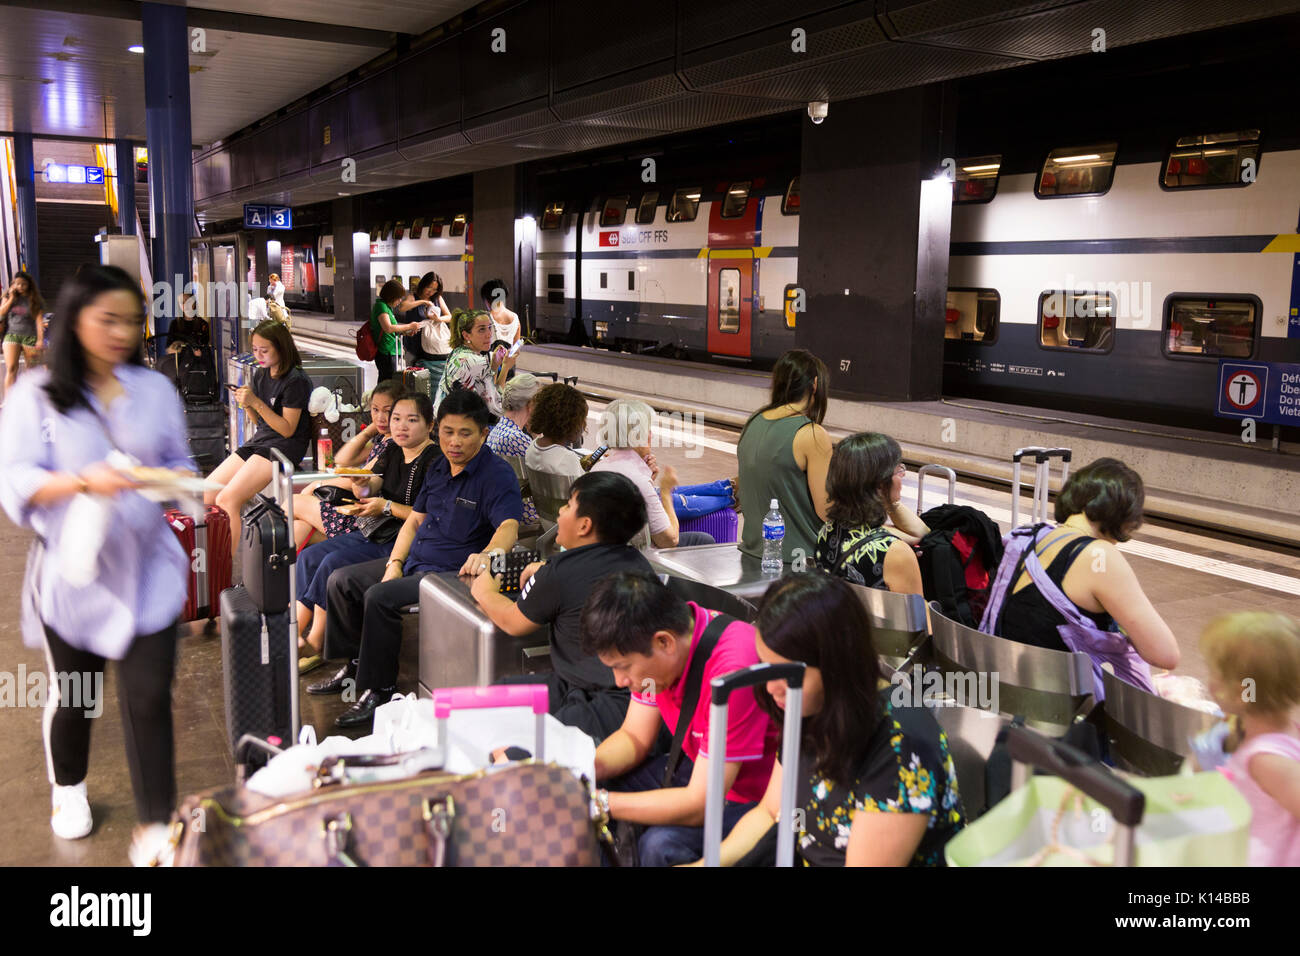 Railway platform at Geneva International airport filled with people passengers who have just flown in to Switzerland and you are waiting for a train. - Stock Image